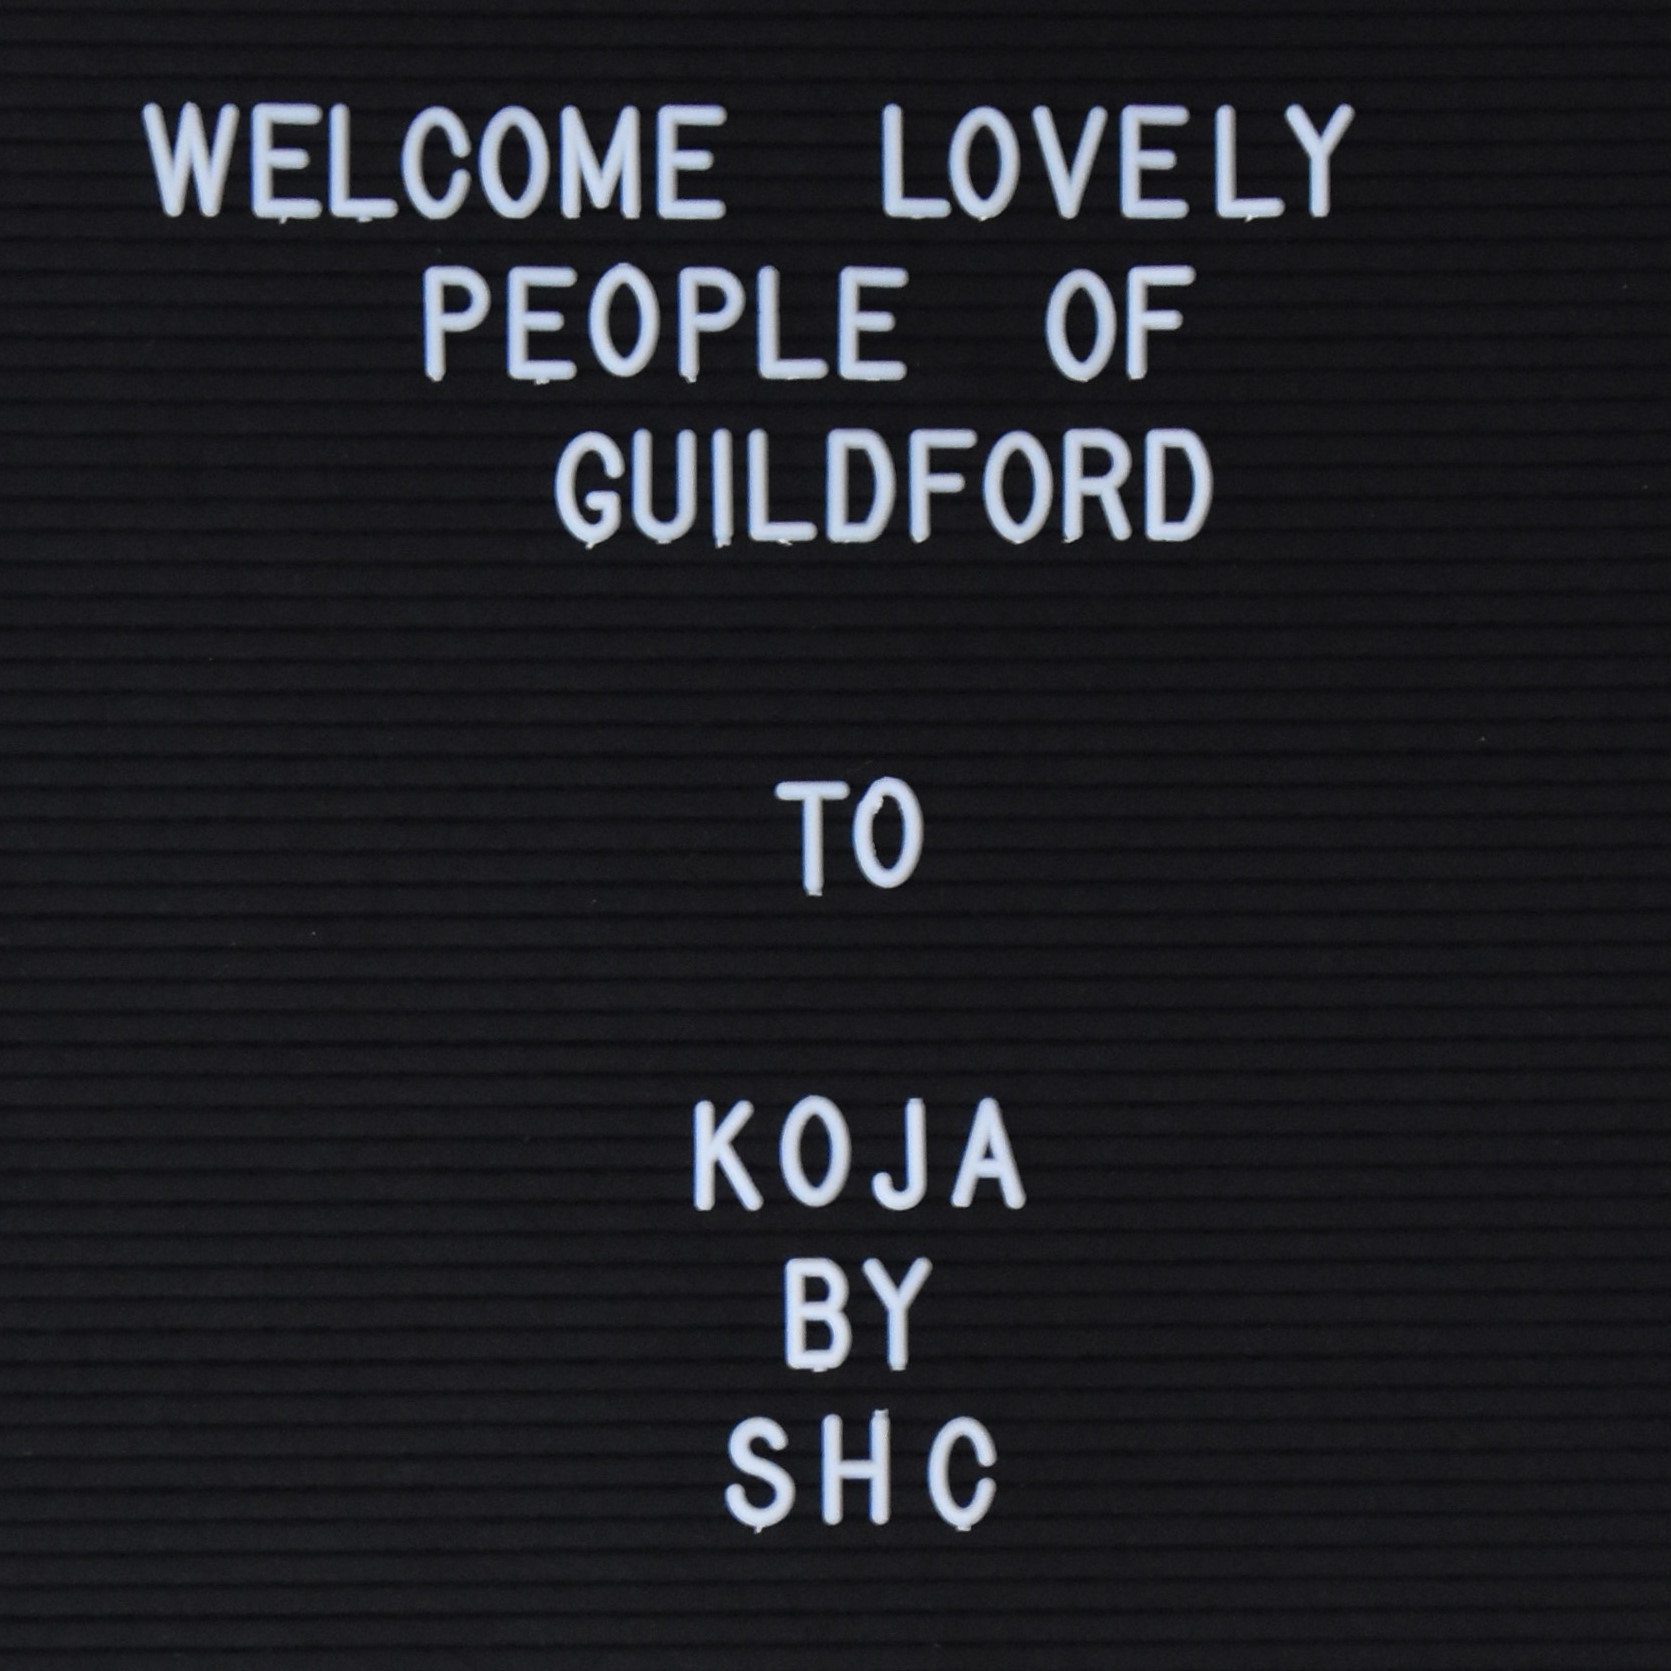 """The sign inside Koja by Surrey Hills Coffee: """"Welcome Lovely People Of Guildford to Koja by SHC"""""""